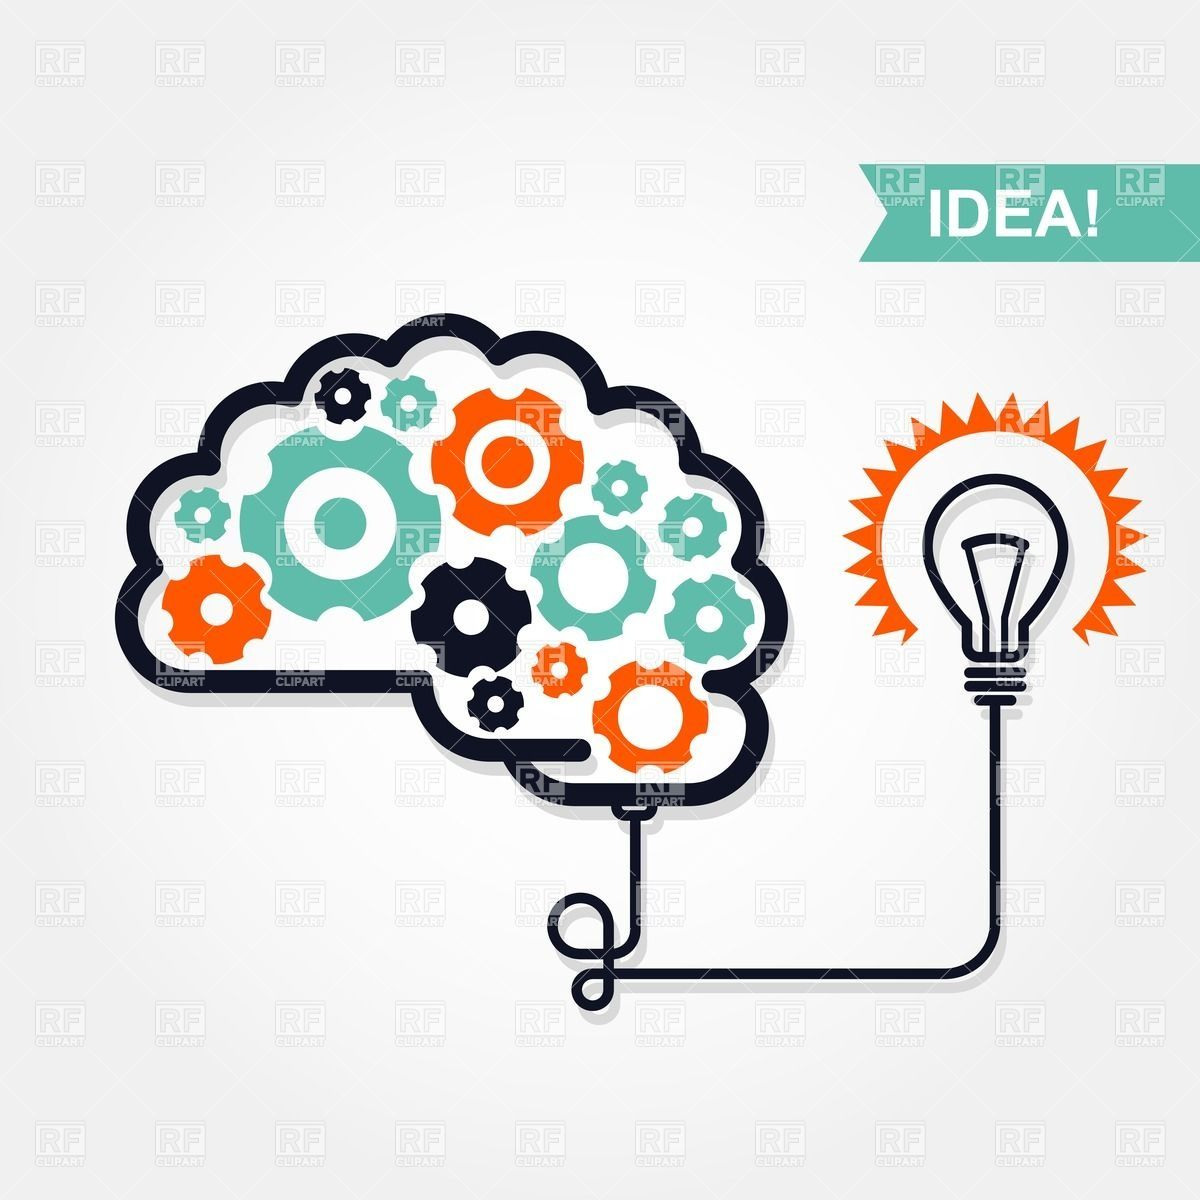 Business idea or invention icon brain with gear wheel